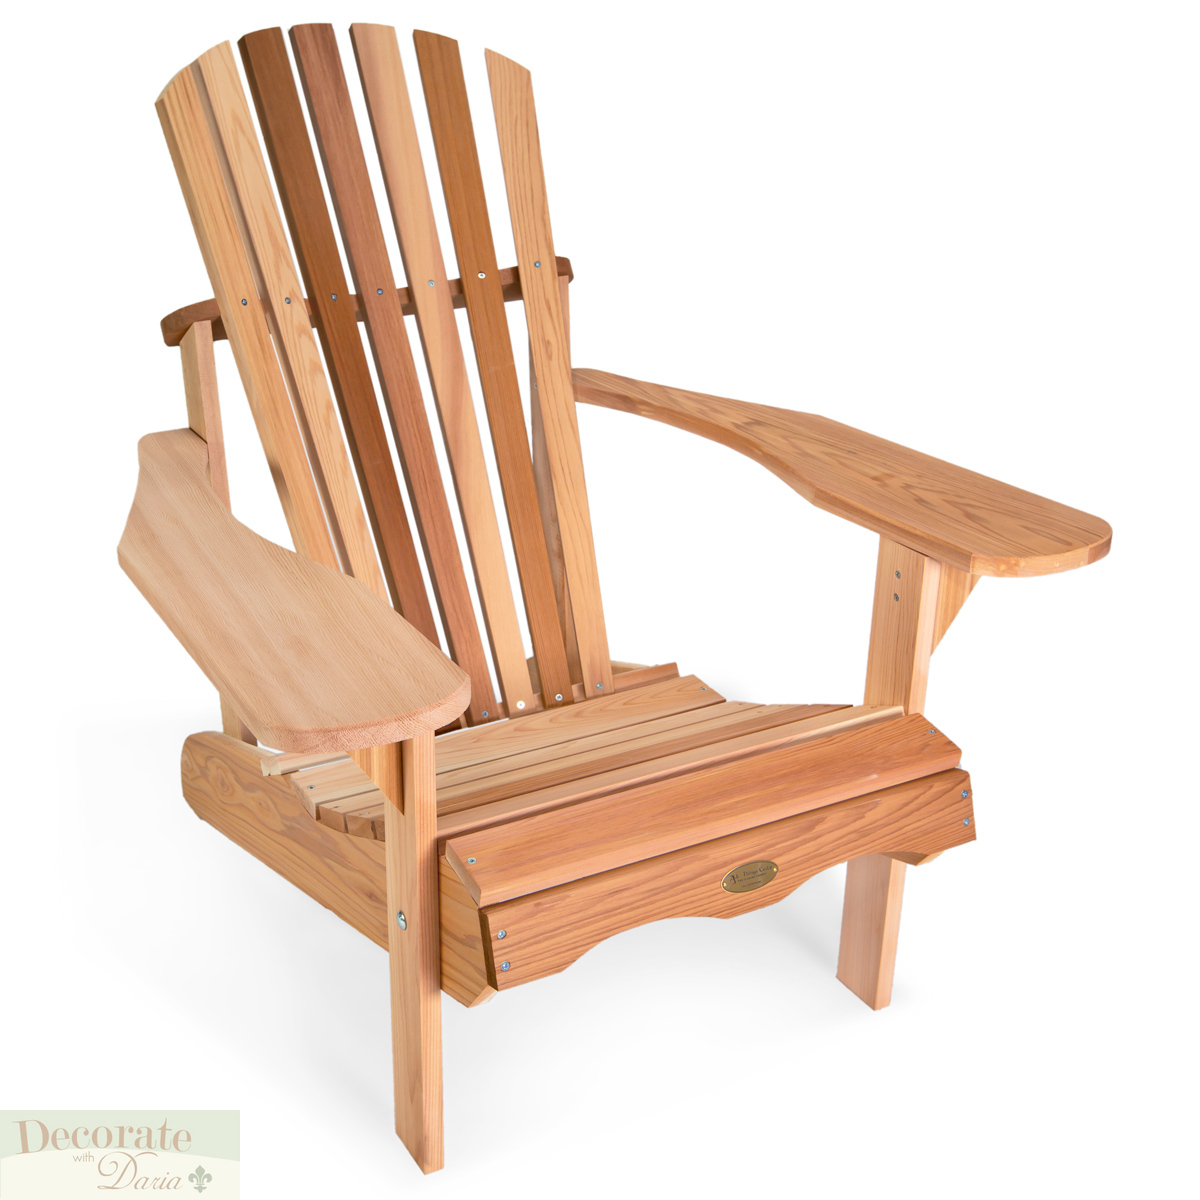 Details about adirondack chair western red cedar handcrafted contoured seat comfort back new